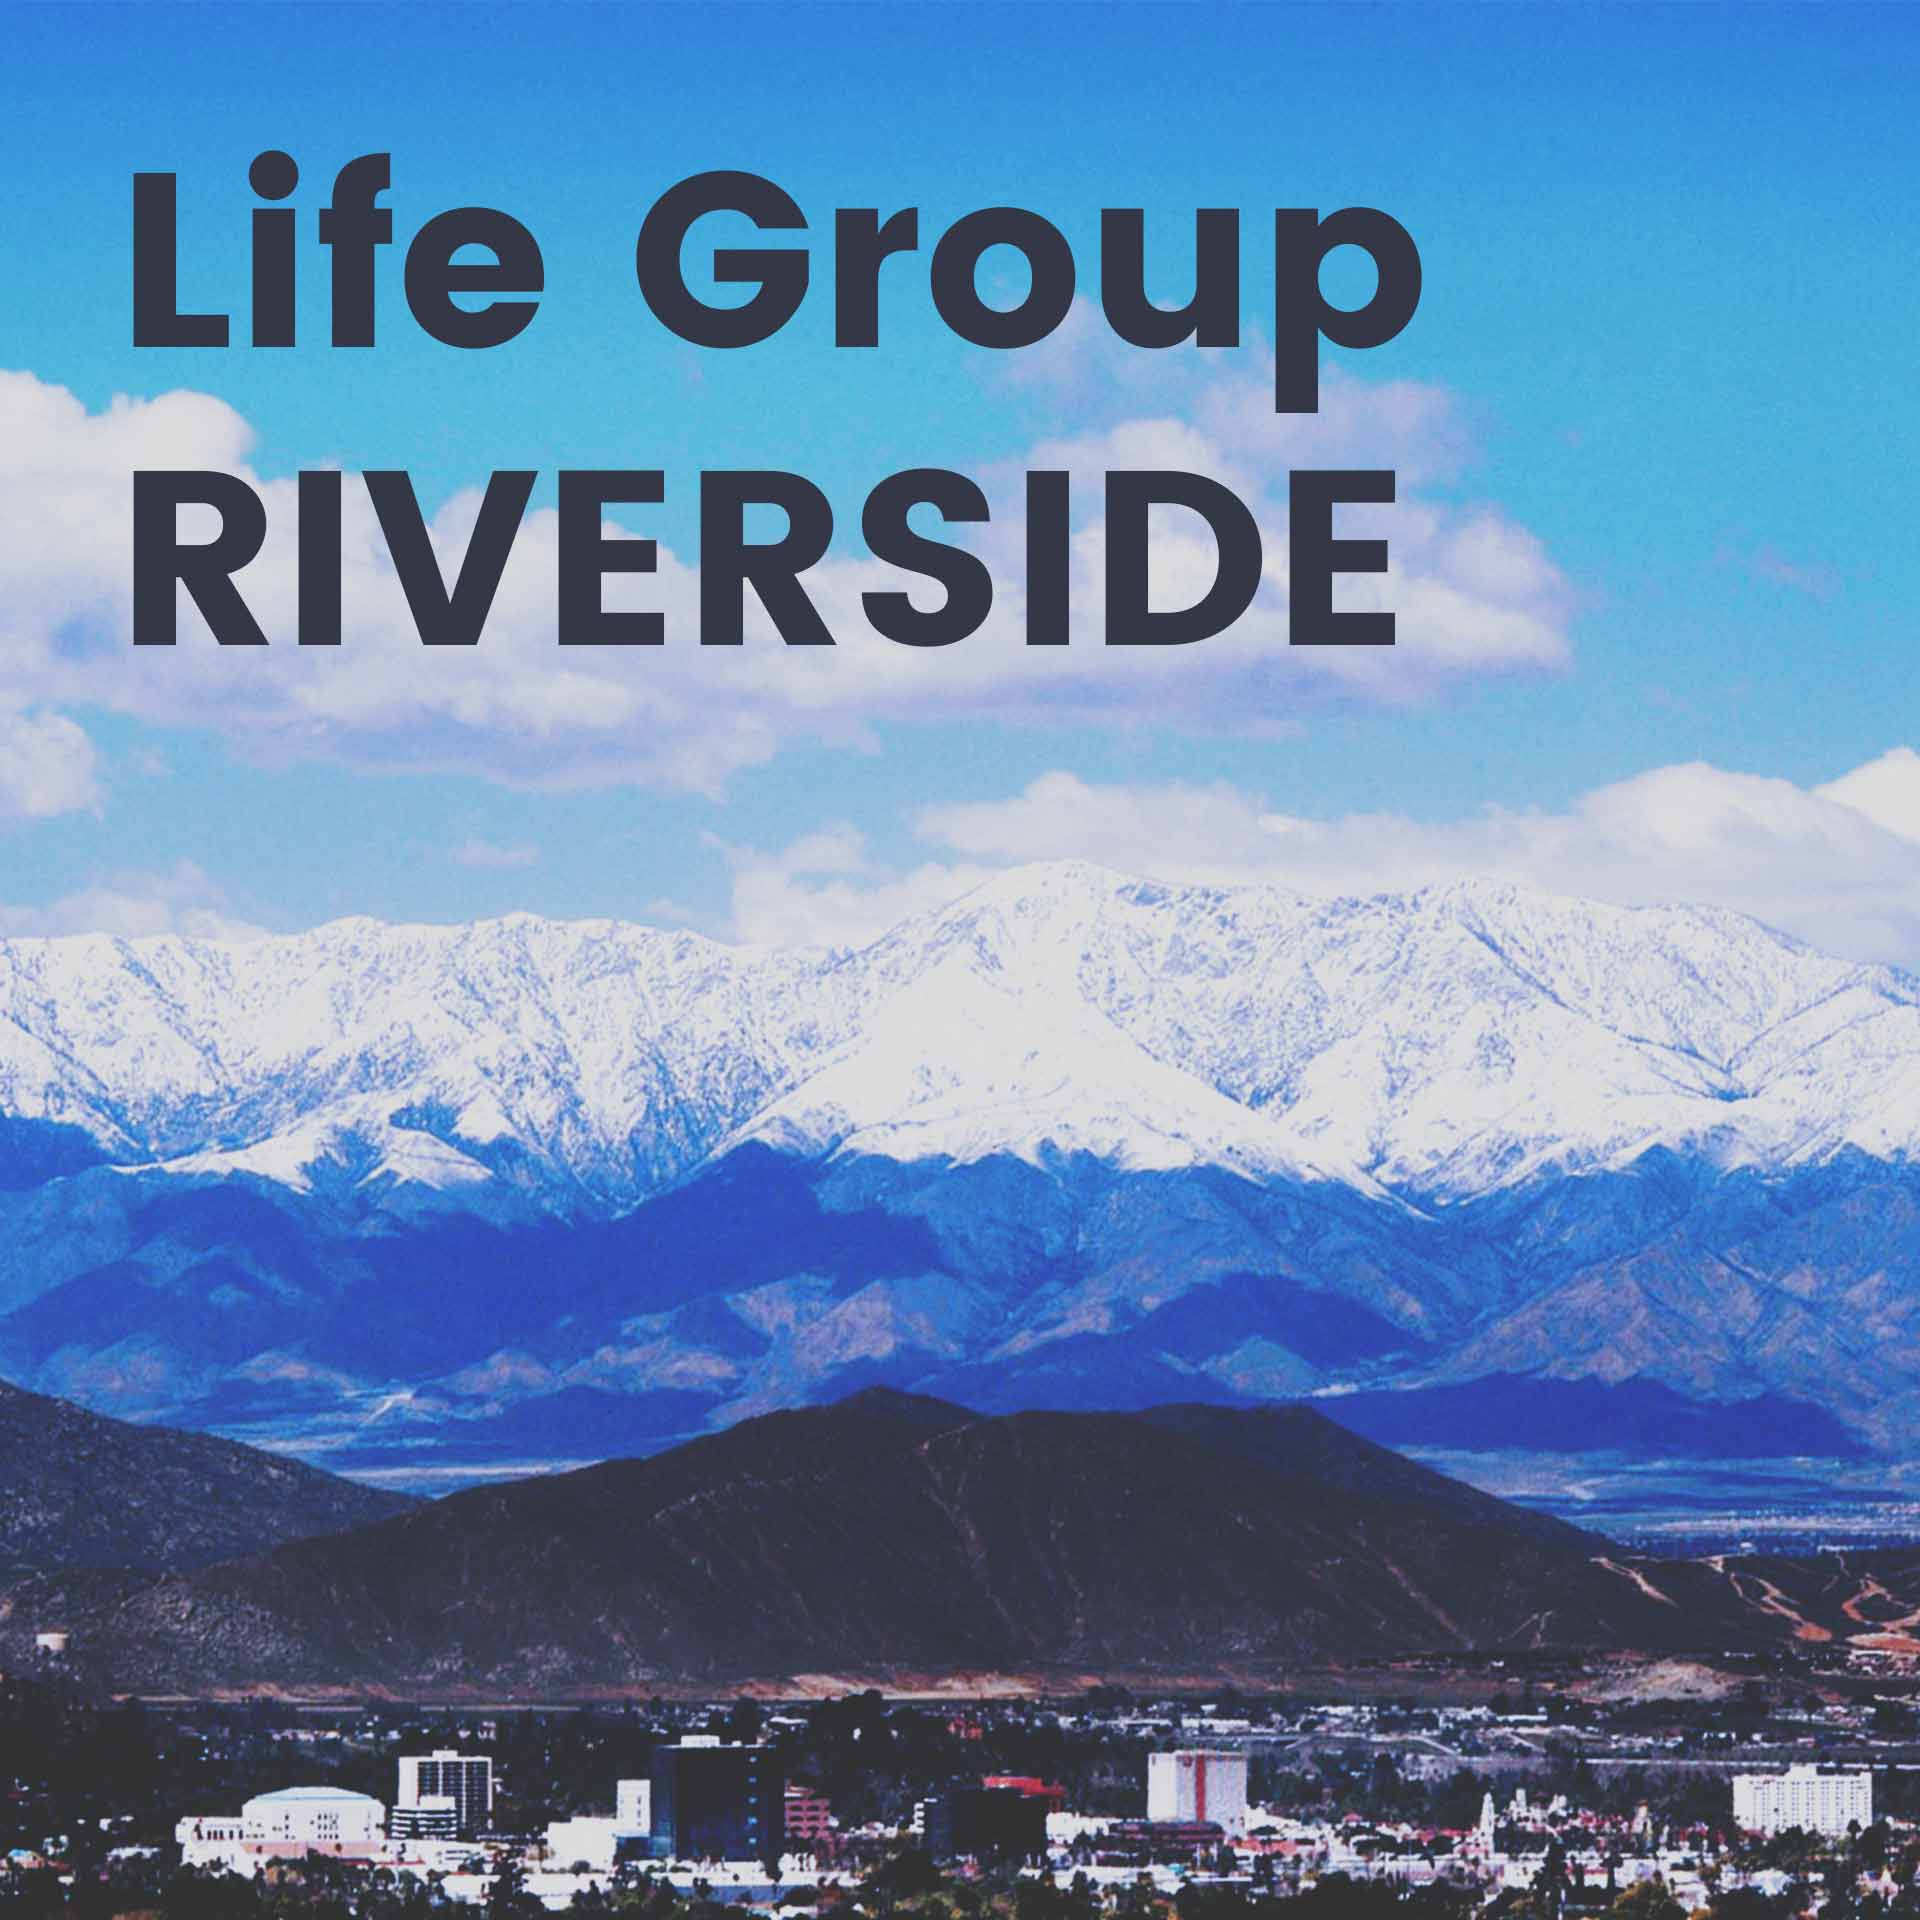 Life-Group-Riverside.jpg